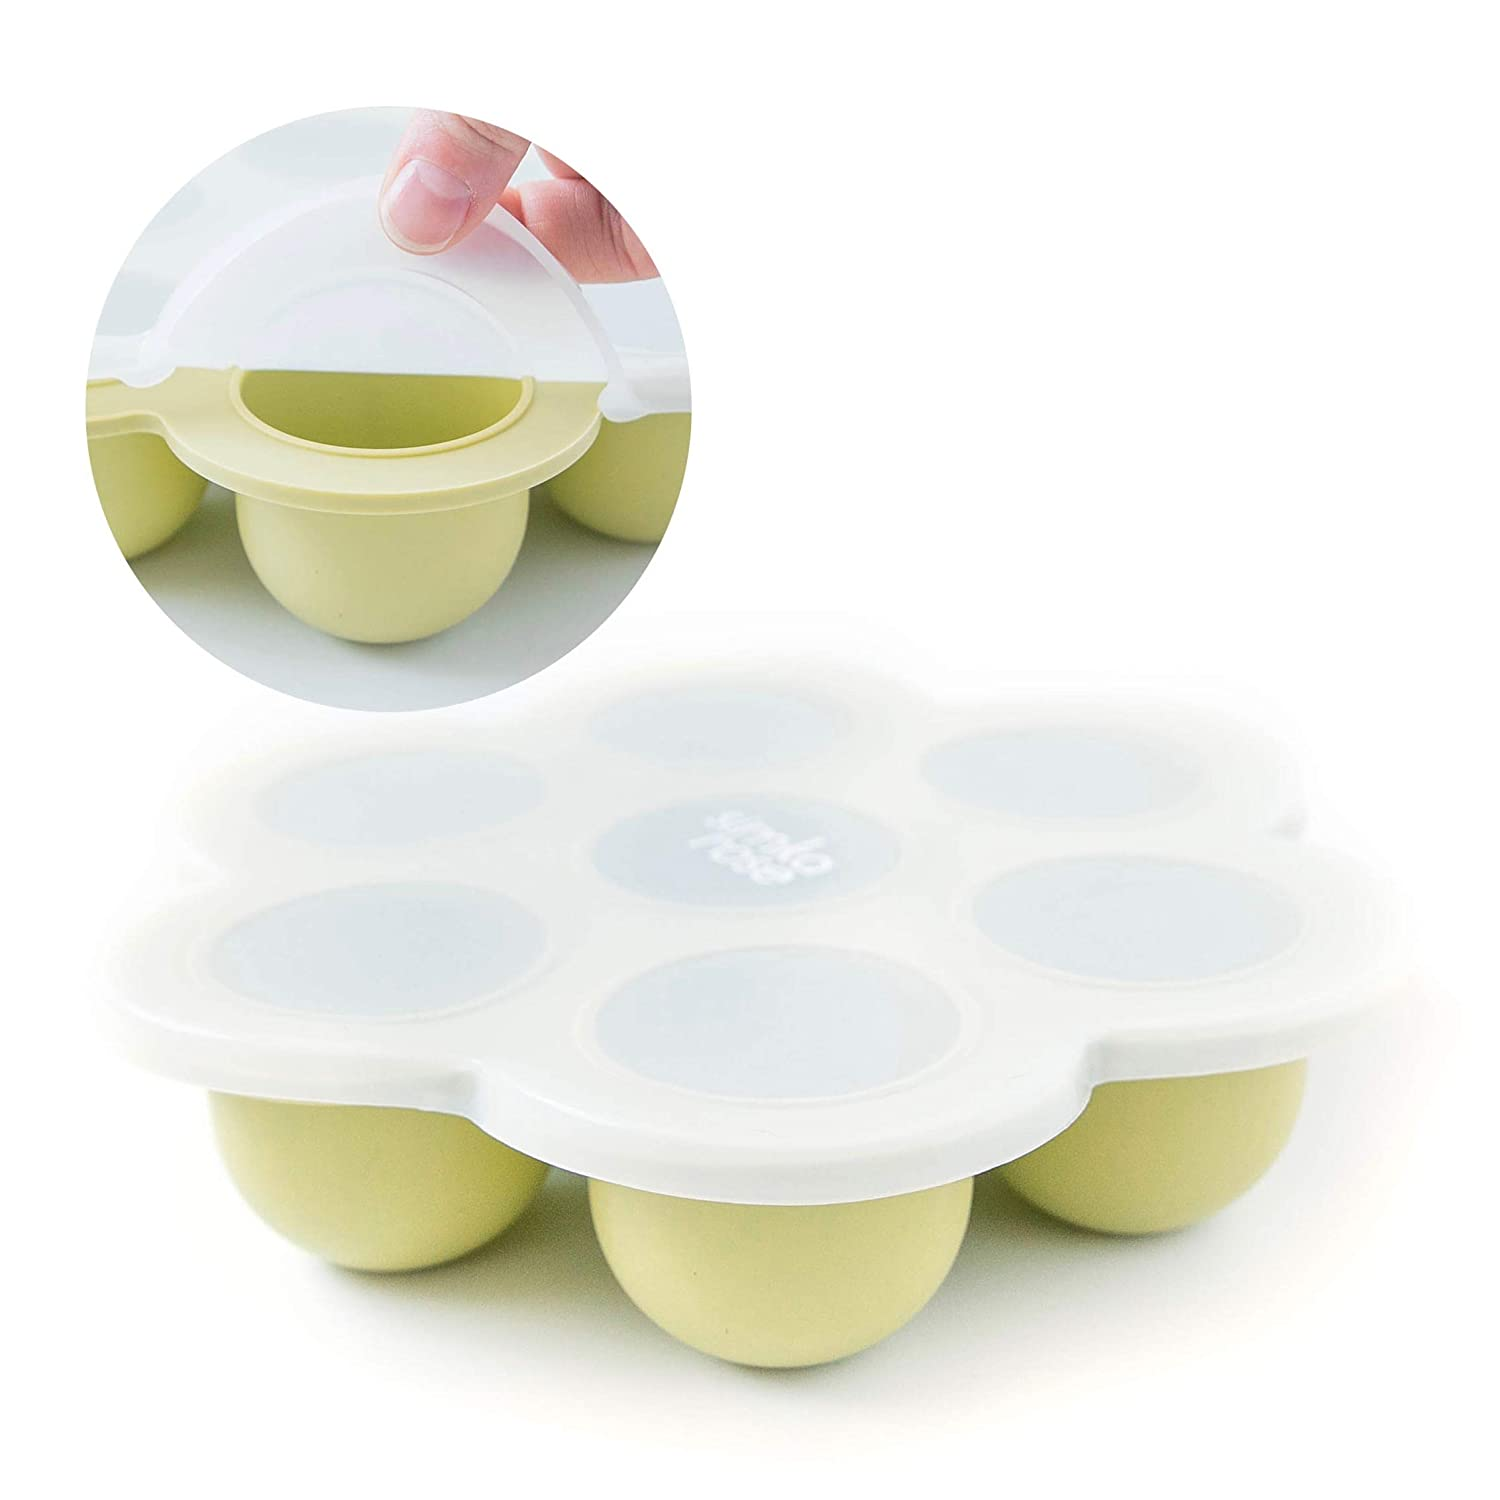 Simka Rose Baby Food Freezer Tray and Storage with Clip On Lid, BPA Free Silicone, 2.5 OZ Portions (Olive, 7 Portion)